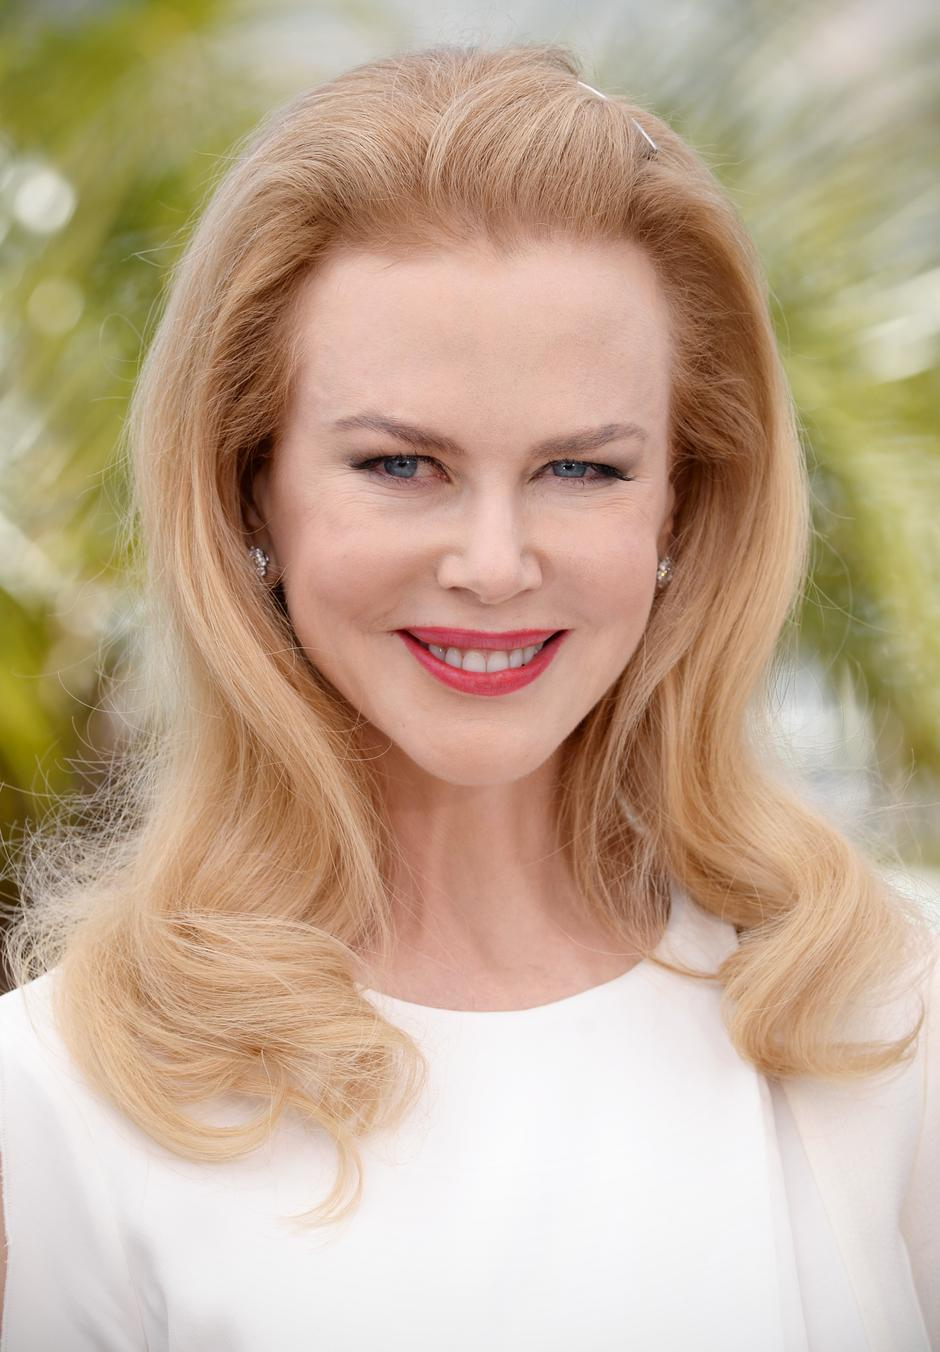 67th Cannes Film Festival - Grace of Monaco Photocall | Autor: Doug Peters/Press Association/PIXSELL